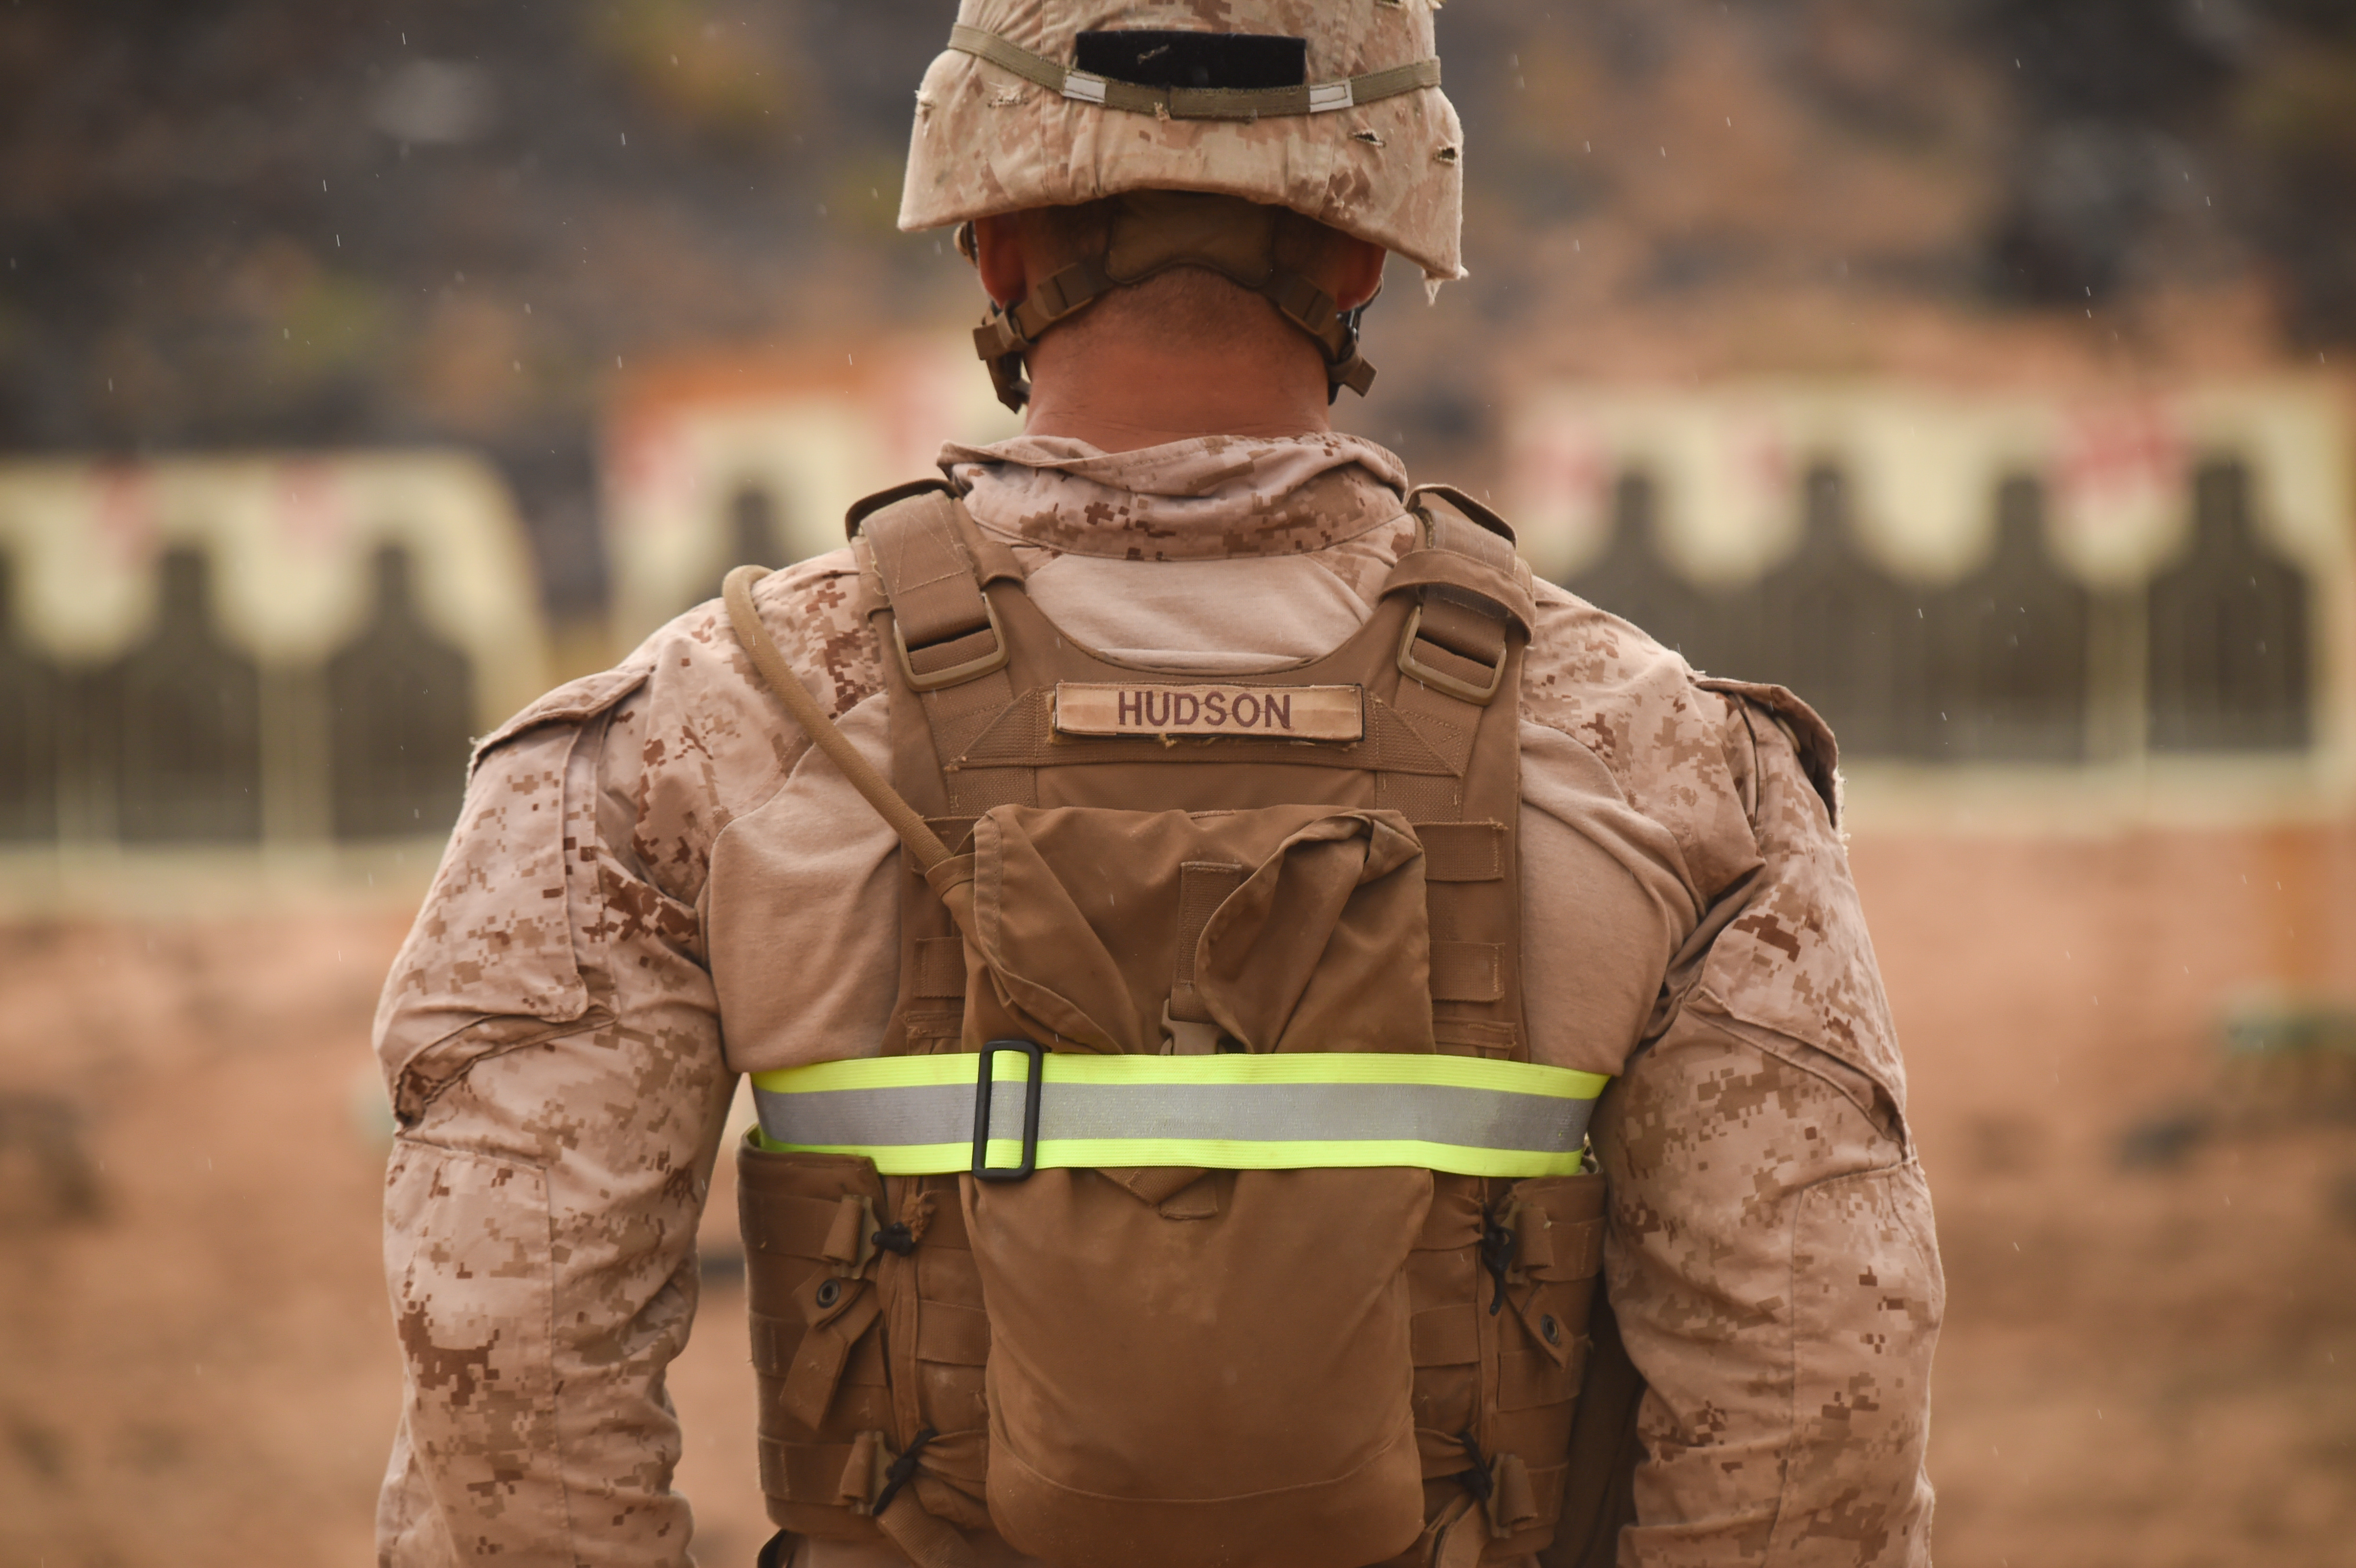 U.S. Marine Corps Sgt. Dylan Hudson, Alpha Company, 1st Battalion, 11th Marine Expeditionary Unit (MEU), stands at the edge of a range waiting for the next repetition of fire, Feb. 14, 2017, at Arta Beach in Djibouti. Marines worked on engaging a target while moving and under physical stress. A MEU is a quick response force, which consists of Sailors and Marines on standby for immediate crisis response across the globe. (U.S. Air National Guard photo by Staff Sgt. Penny Snoozy)